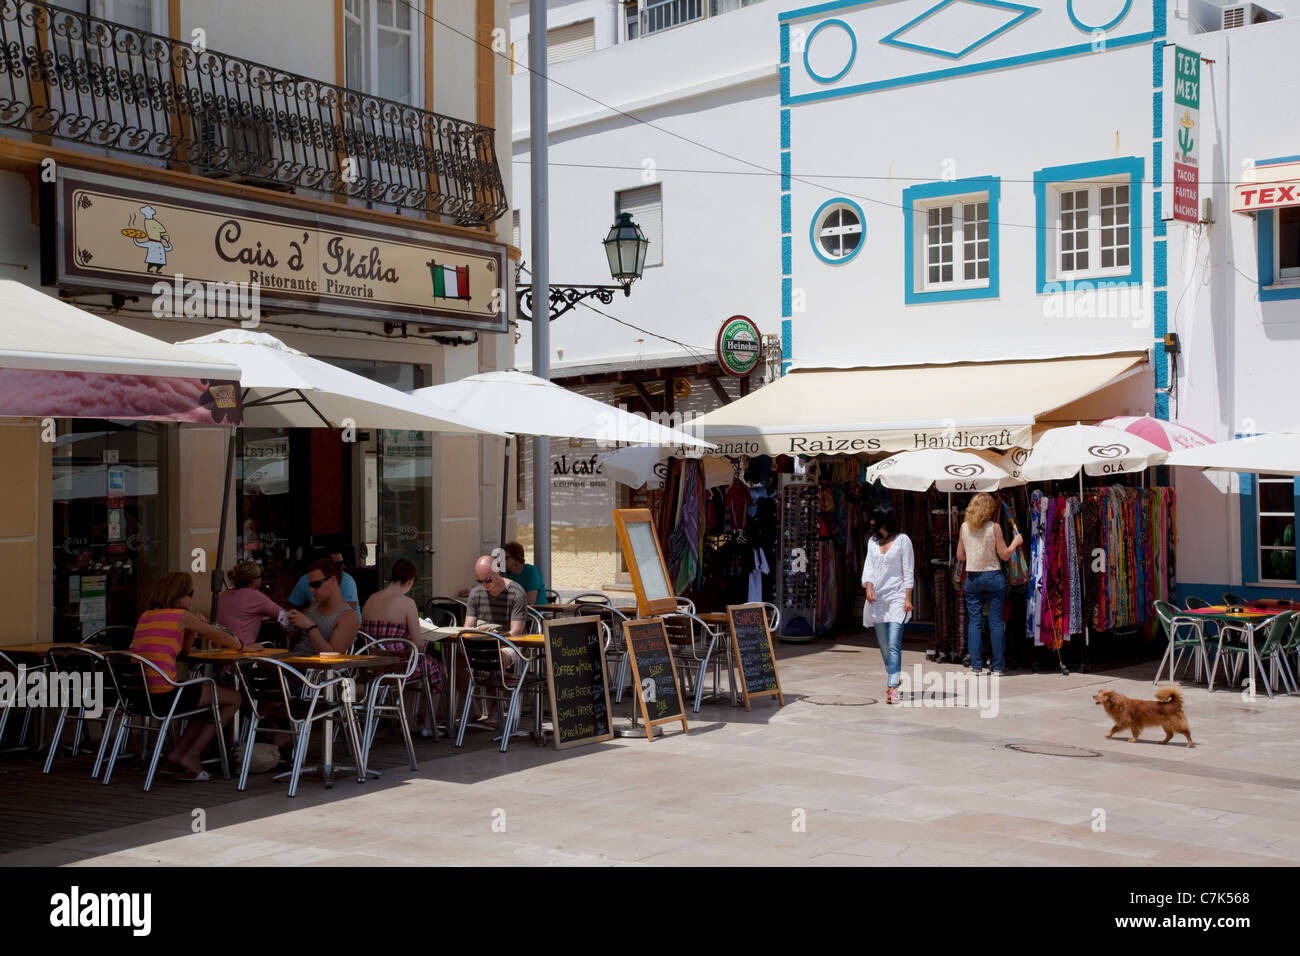 Portugal, Algarve, Albufeira, Shops & Restaurant Stock Photo